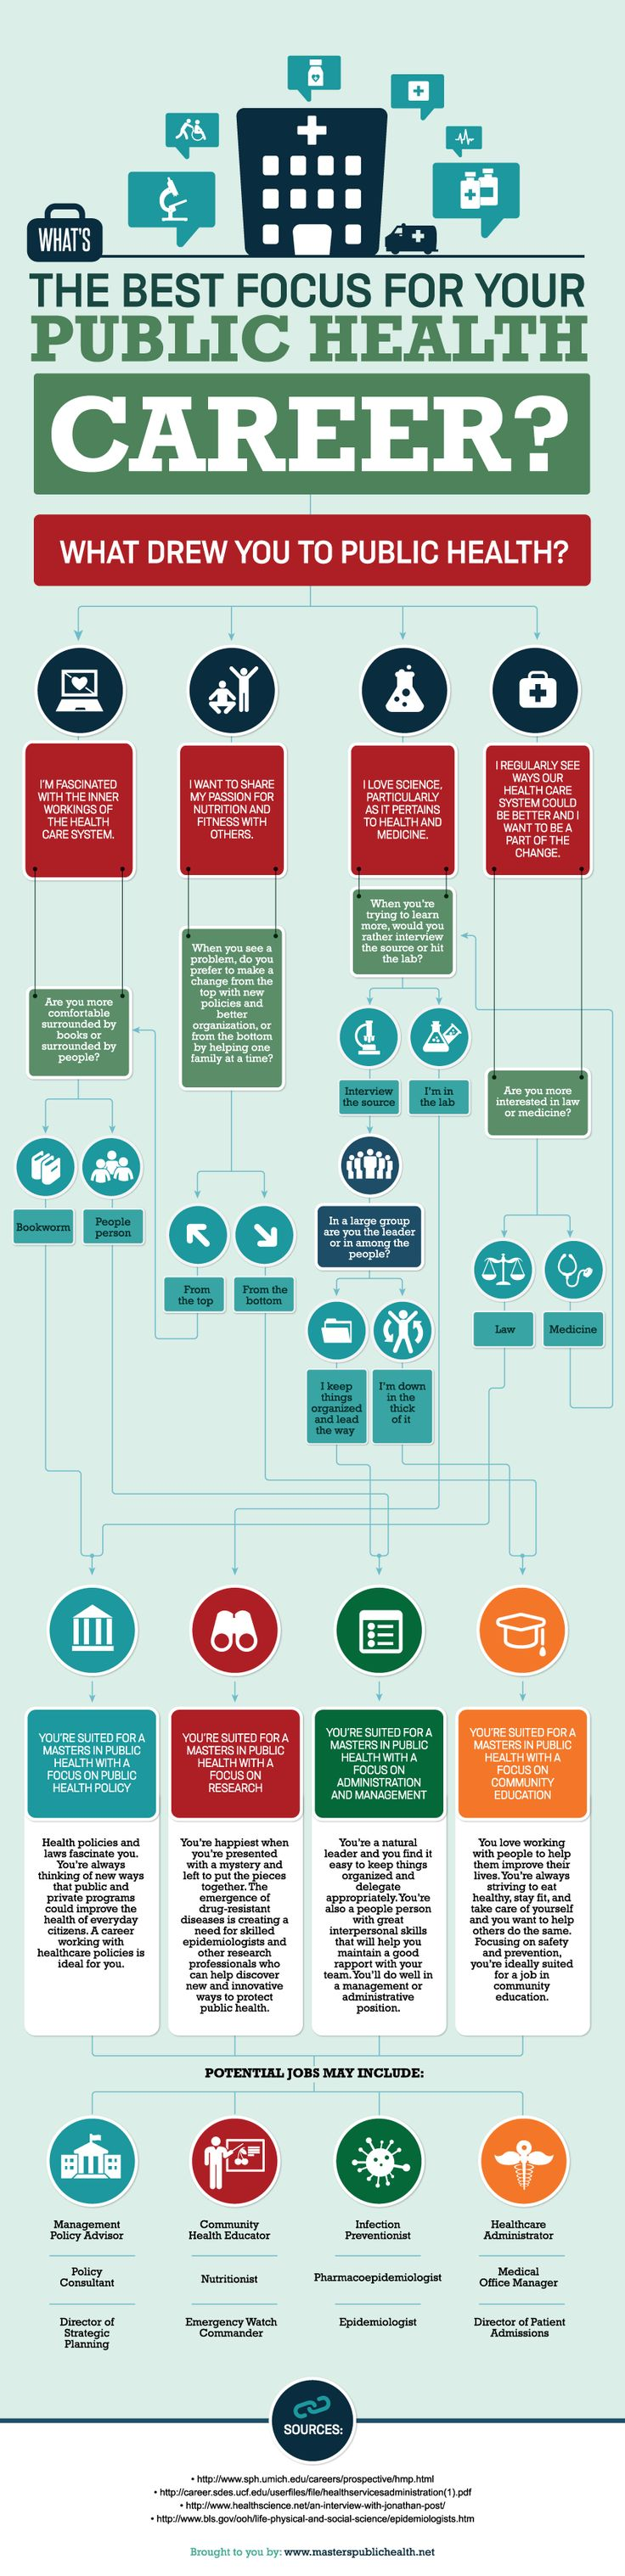 administrative objective for resume%0A What u    s the Best Focus For Your Public Health Career   carrer  health   infographic